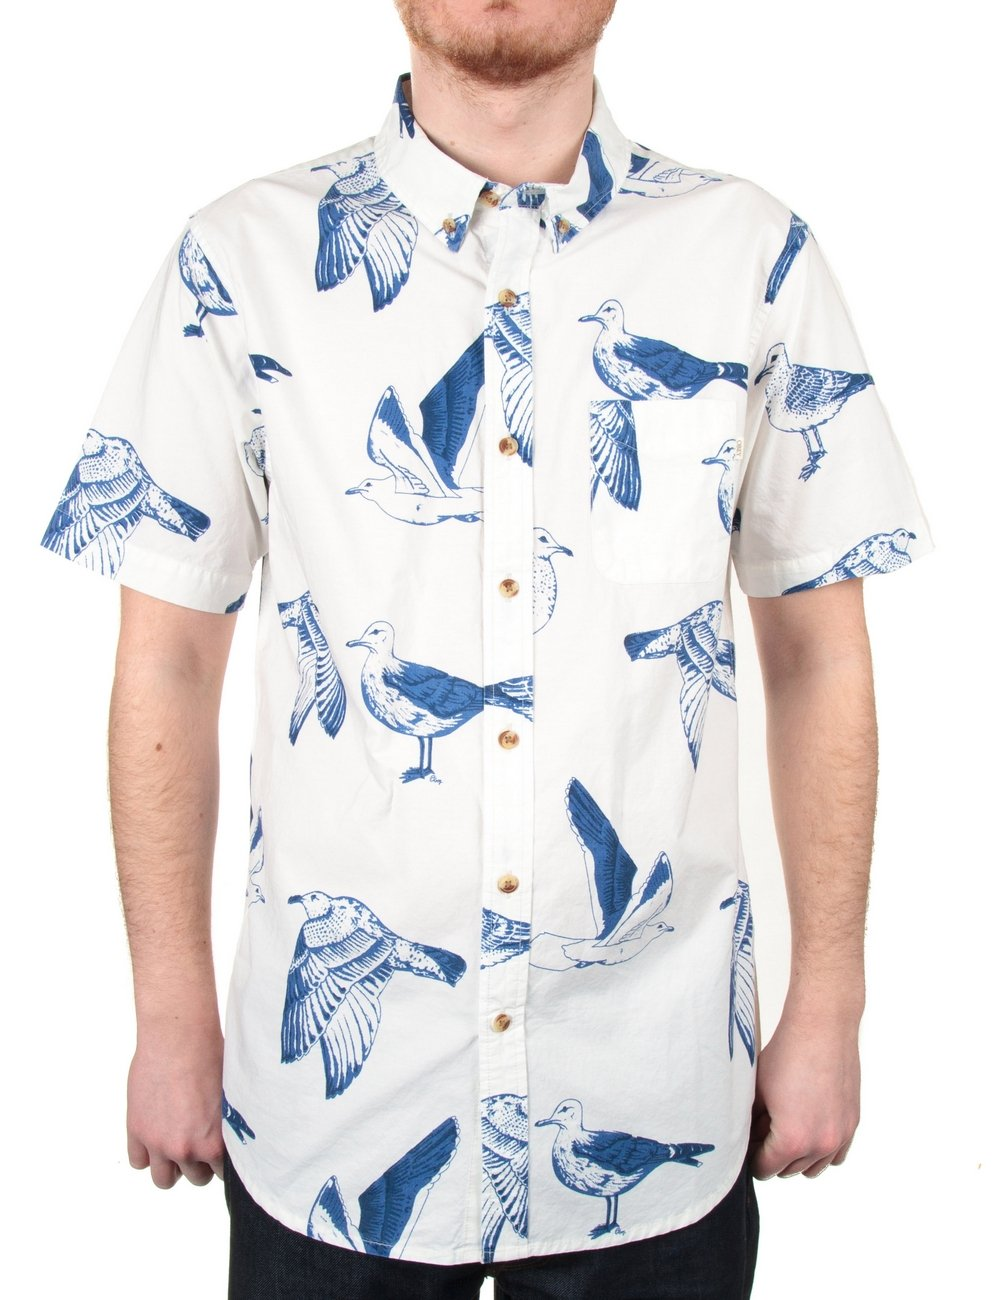 Seagull clothing store. Cheap clothing stores